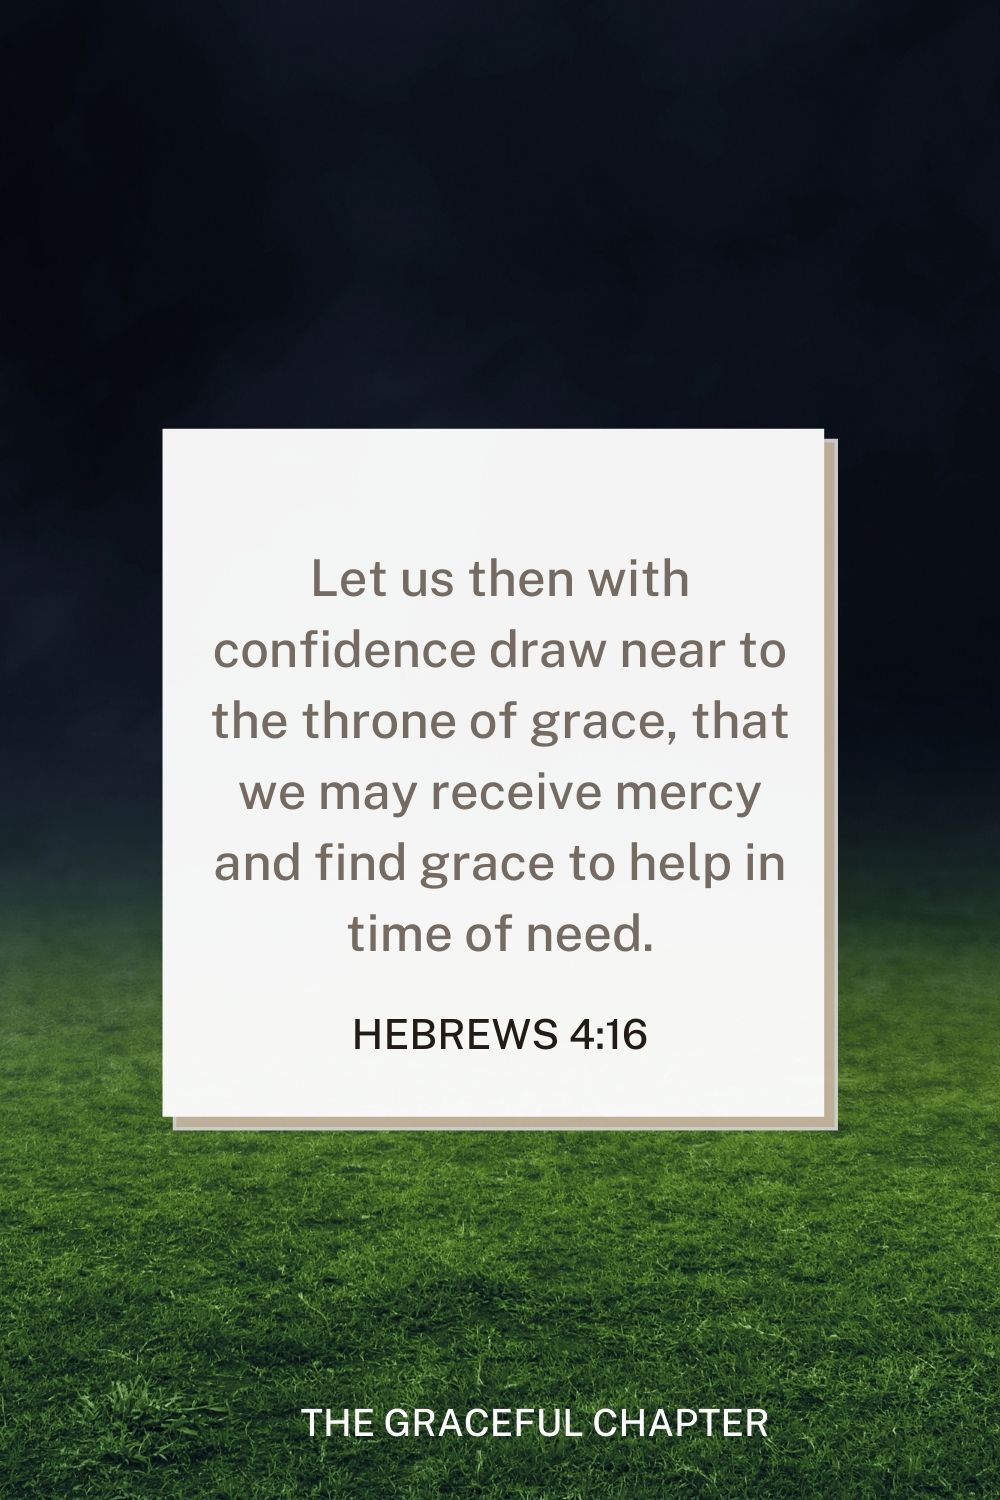 Let us then with confidence draw near to the throne of grace, that we may receive mercy and find grace to help in time of need. Hebrews 4:16